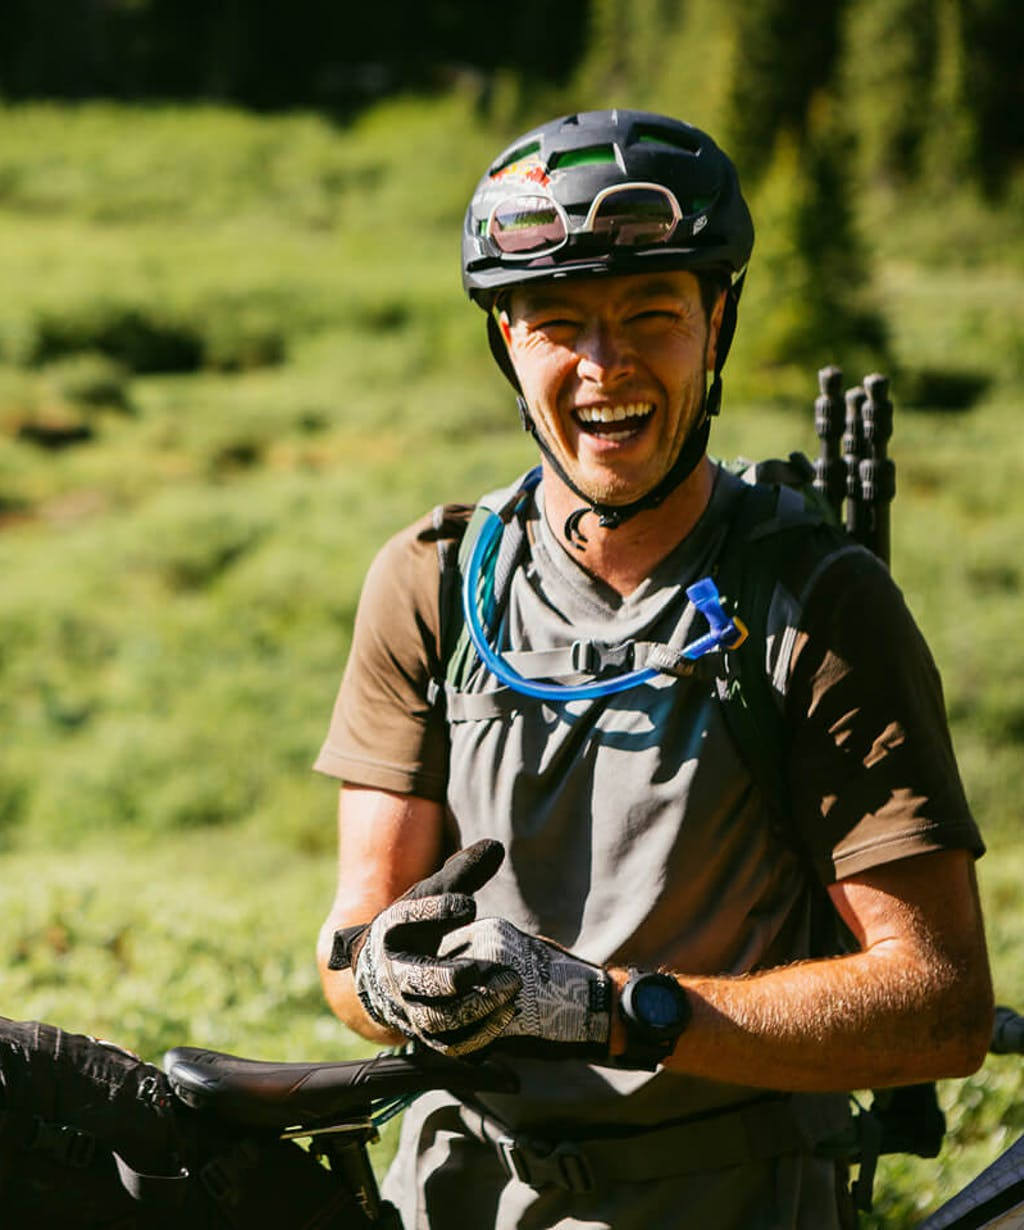 Justin Reiter taking a break next to his ASR after riding a section of the Colorado Trail